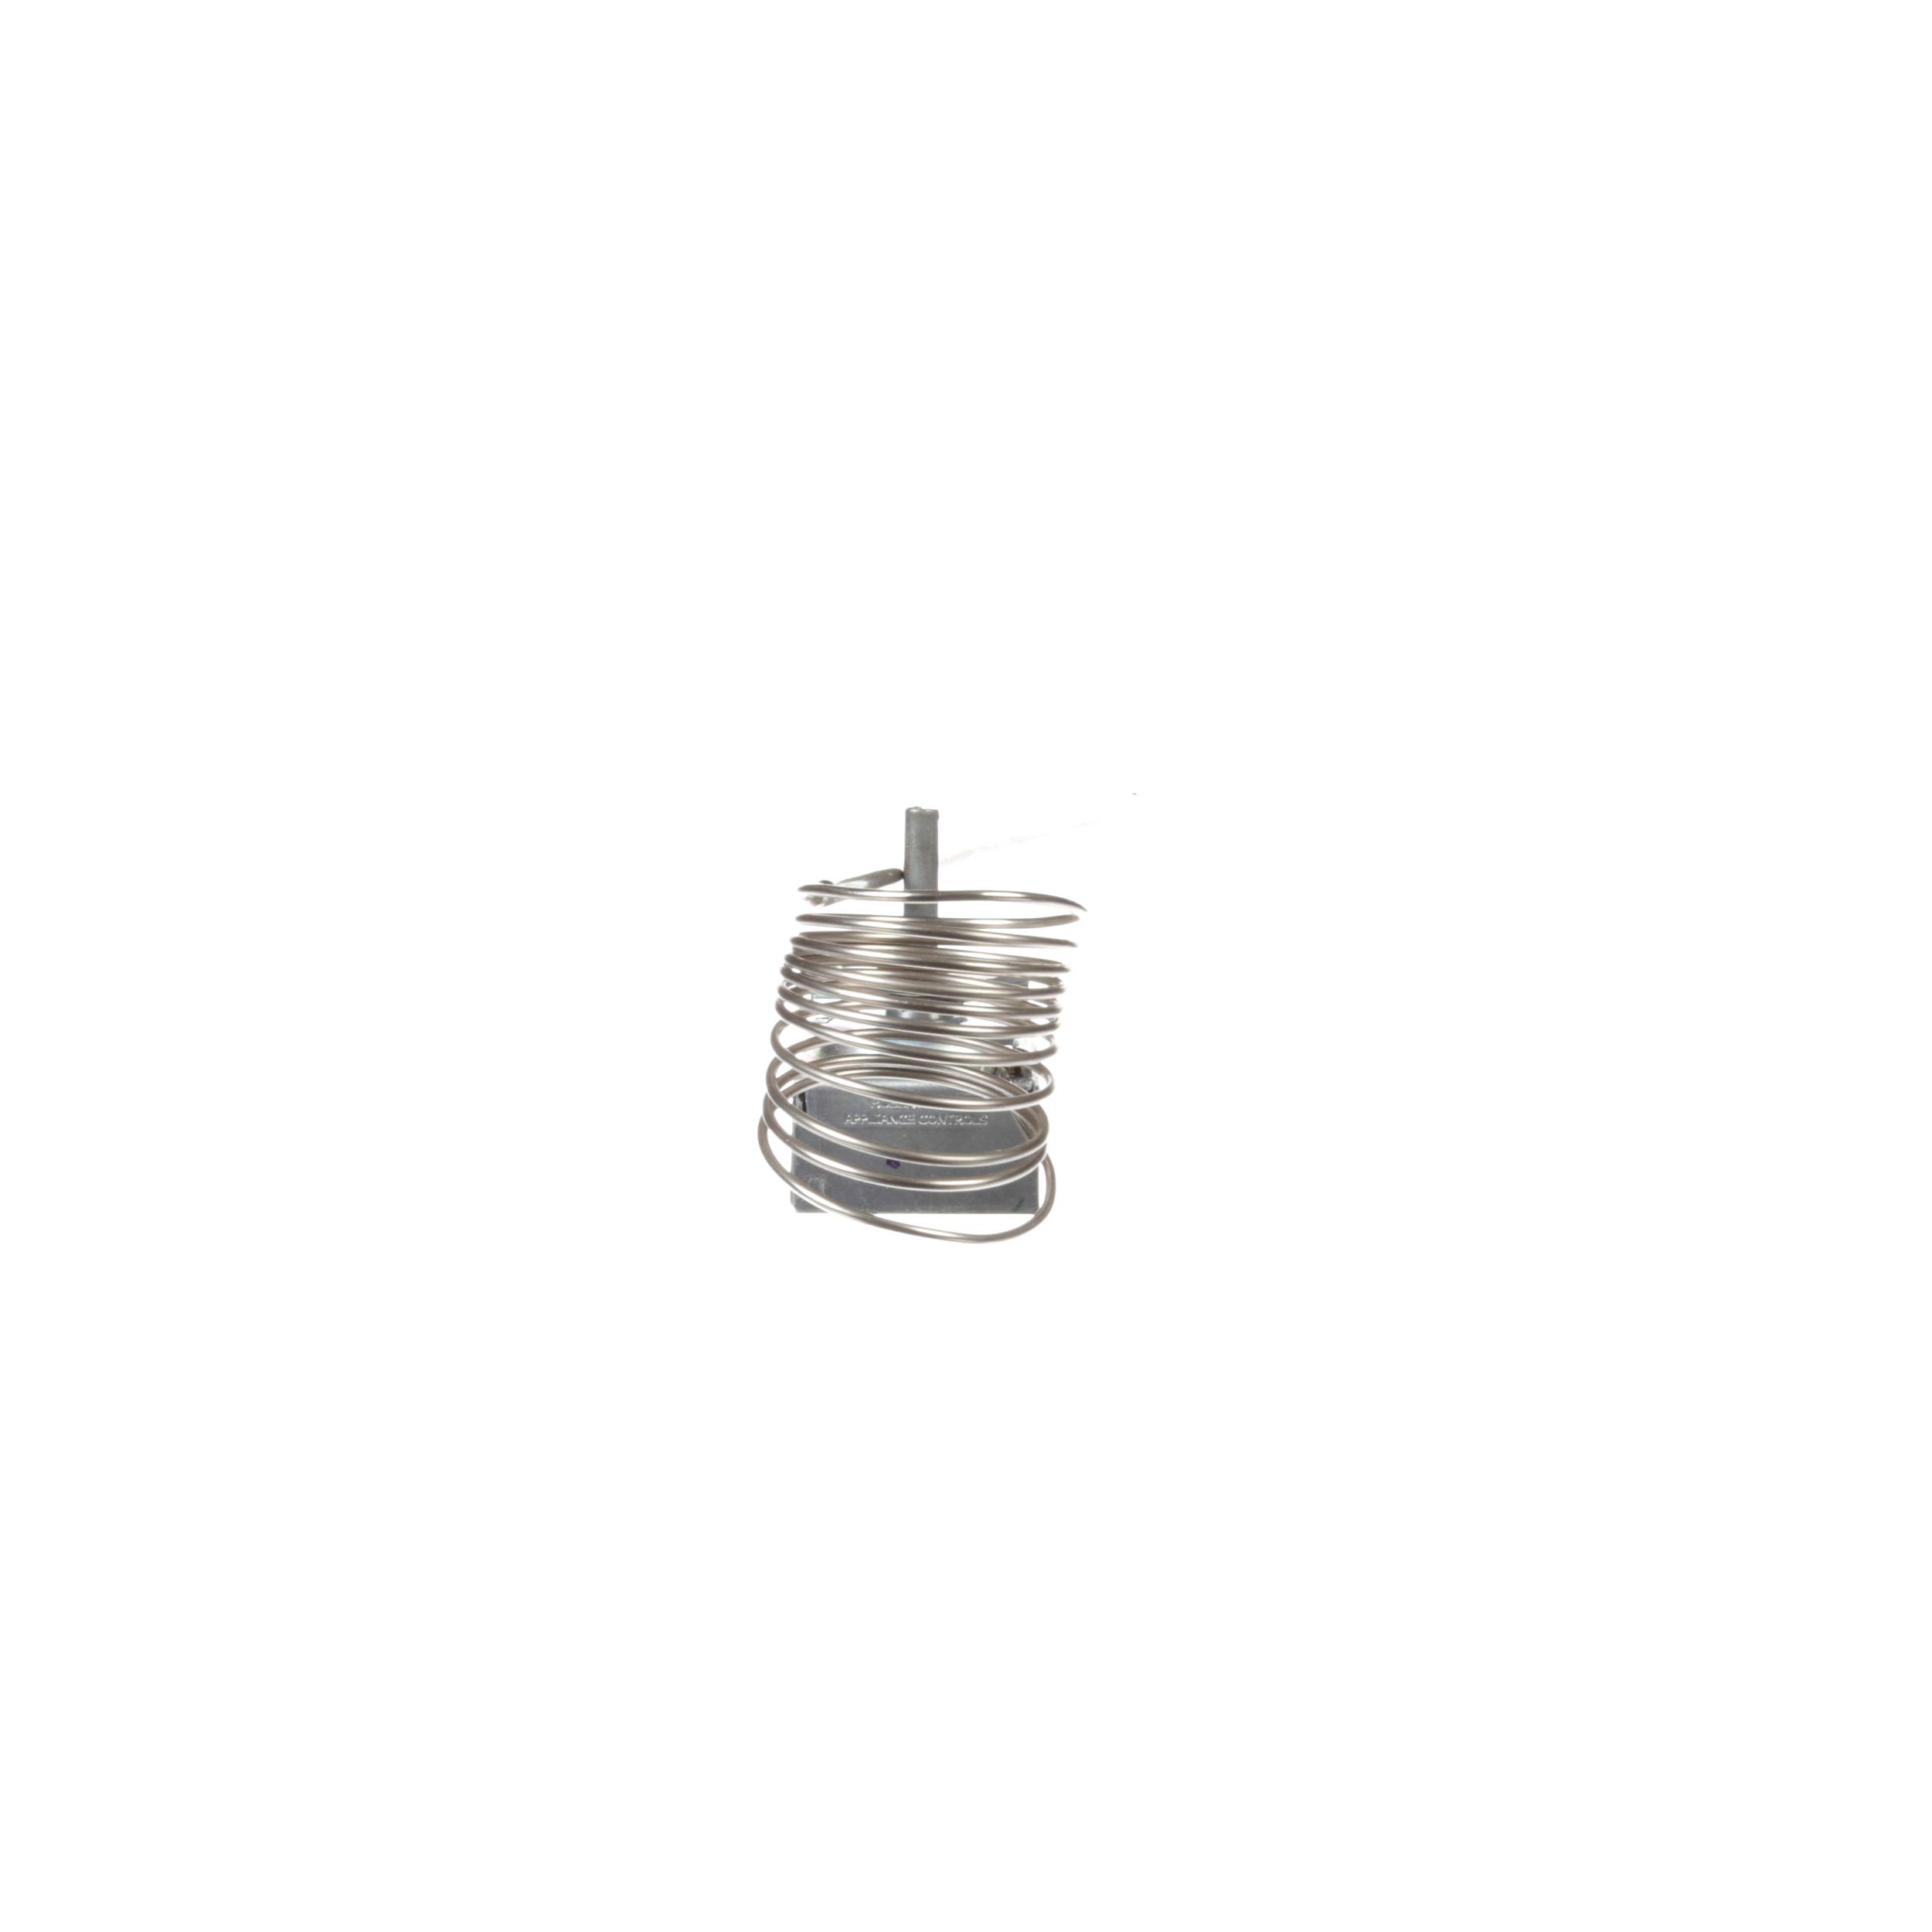 SOUTHBEND THERMOSTAT, 500 DEGREE